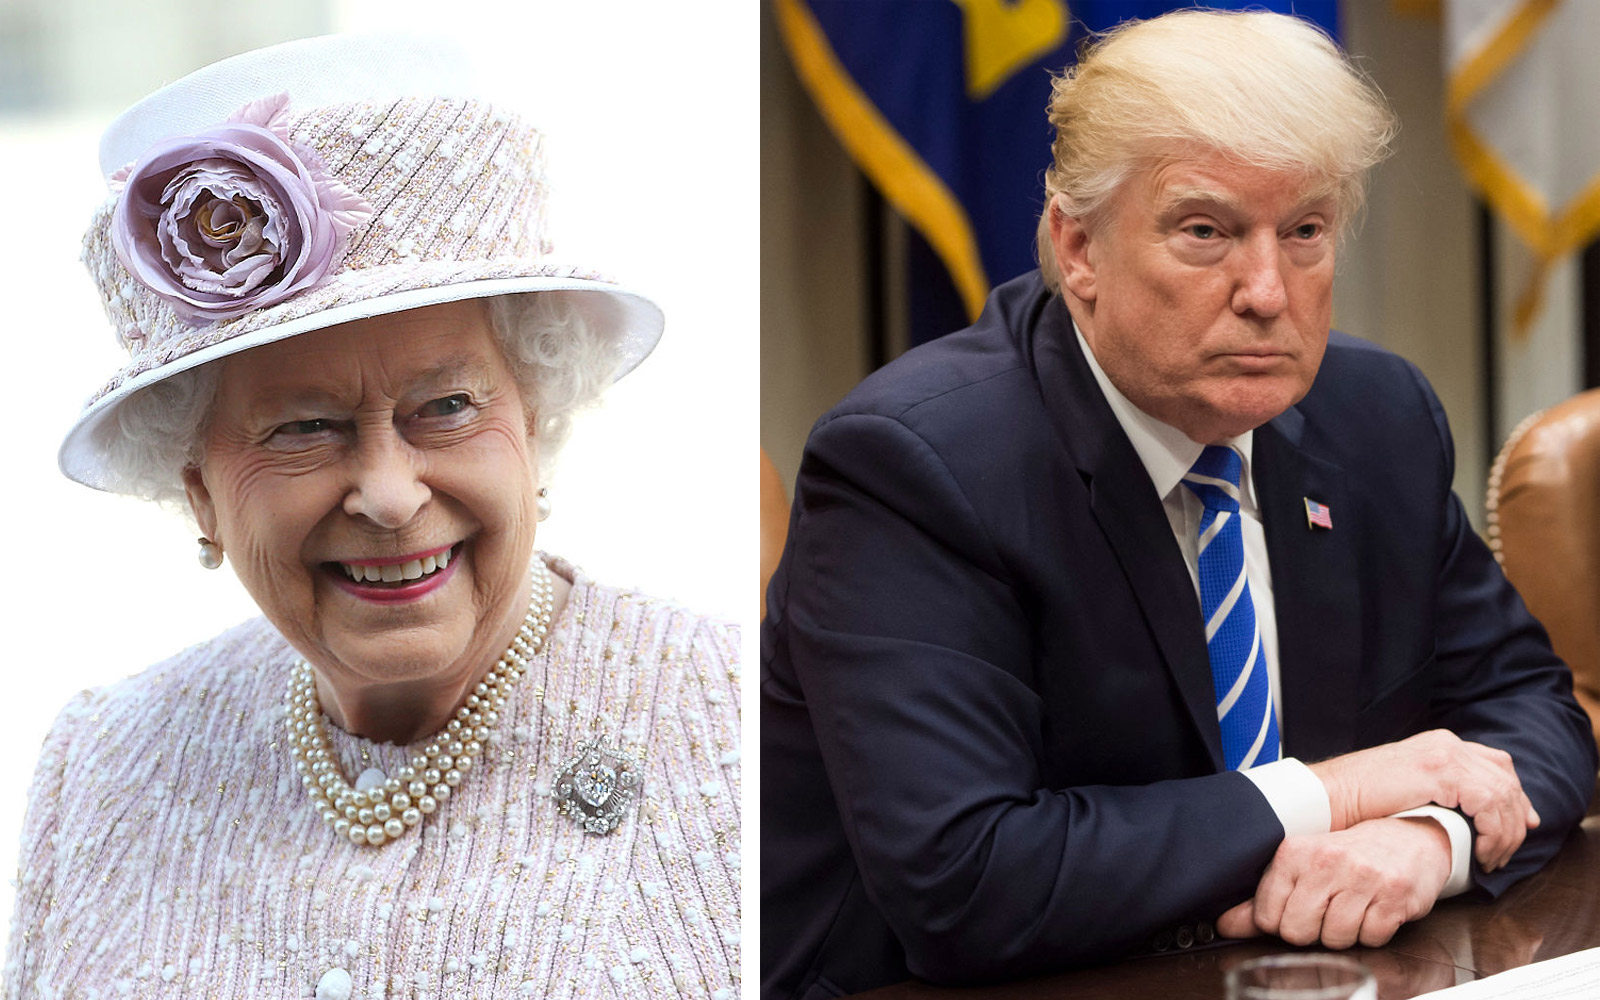 President Trump Won't Meet the Queen and His State Visit Has Been Downgraded: Report